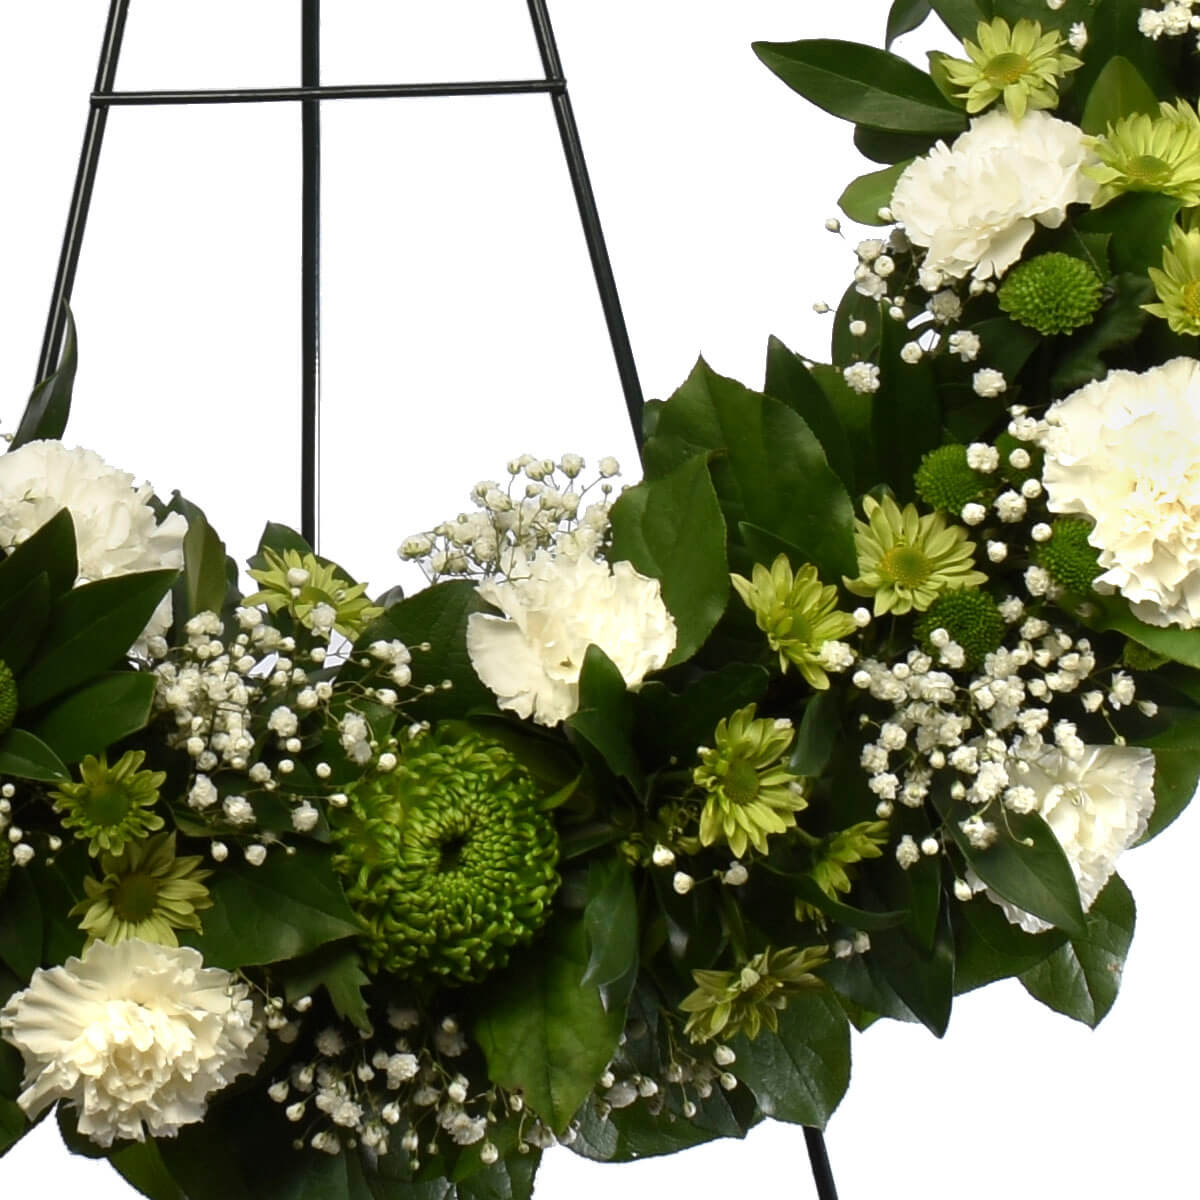 Funeral 24 inch flower wreat with carnations, daises and spray mums